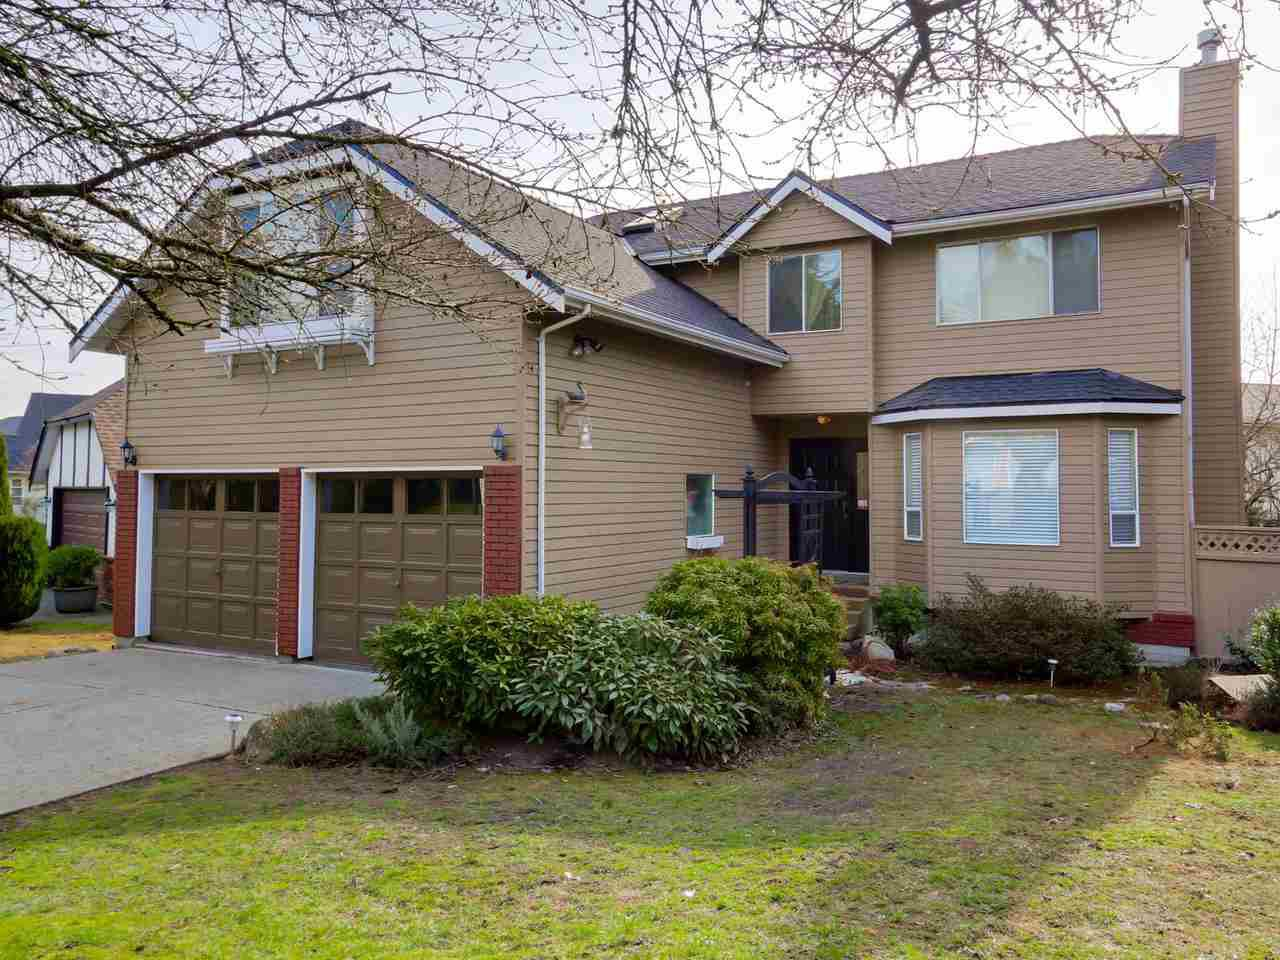 """Main Photo: 2868 TEMPE KNOLL Drive in North Vancouver: Tempe House for sale in """"TEMPE"""" : MLS®# R2046593"""